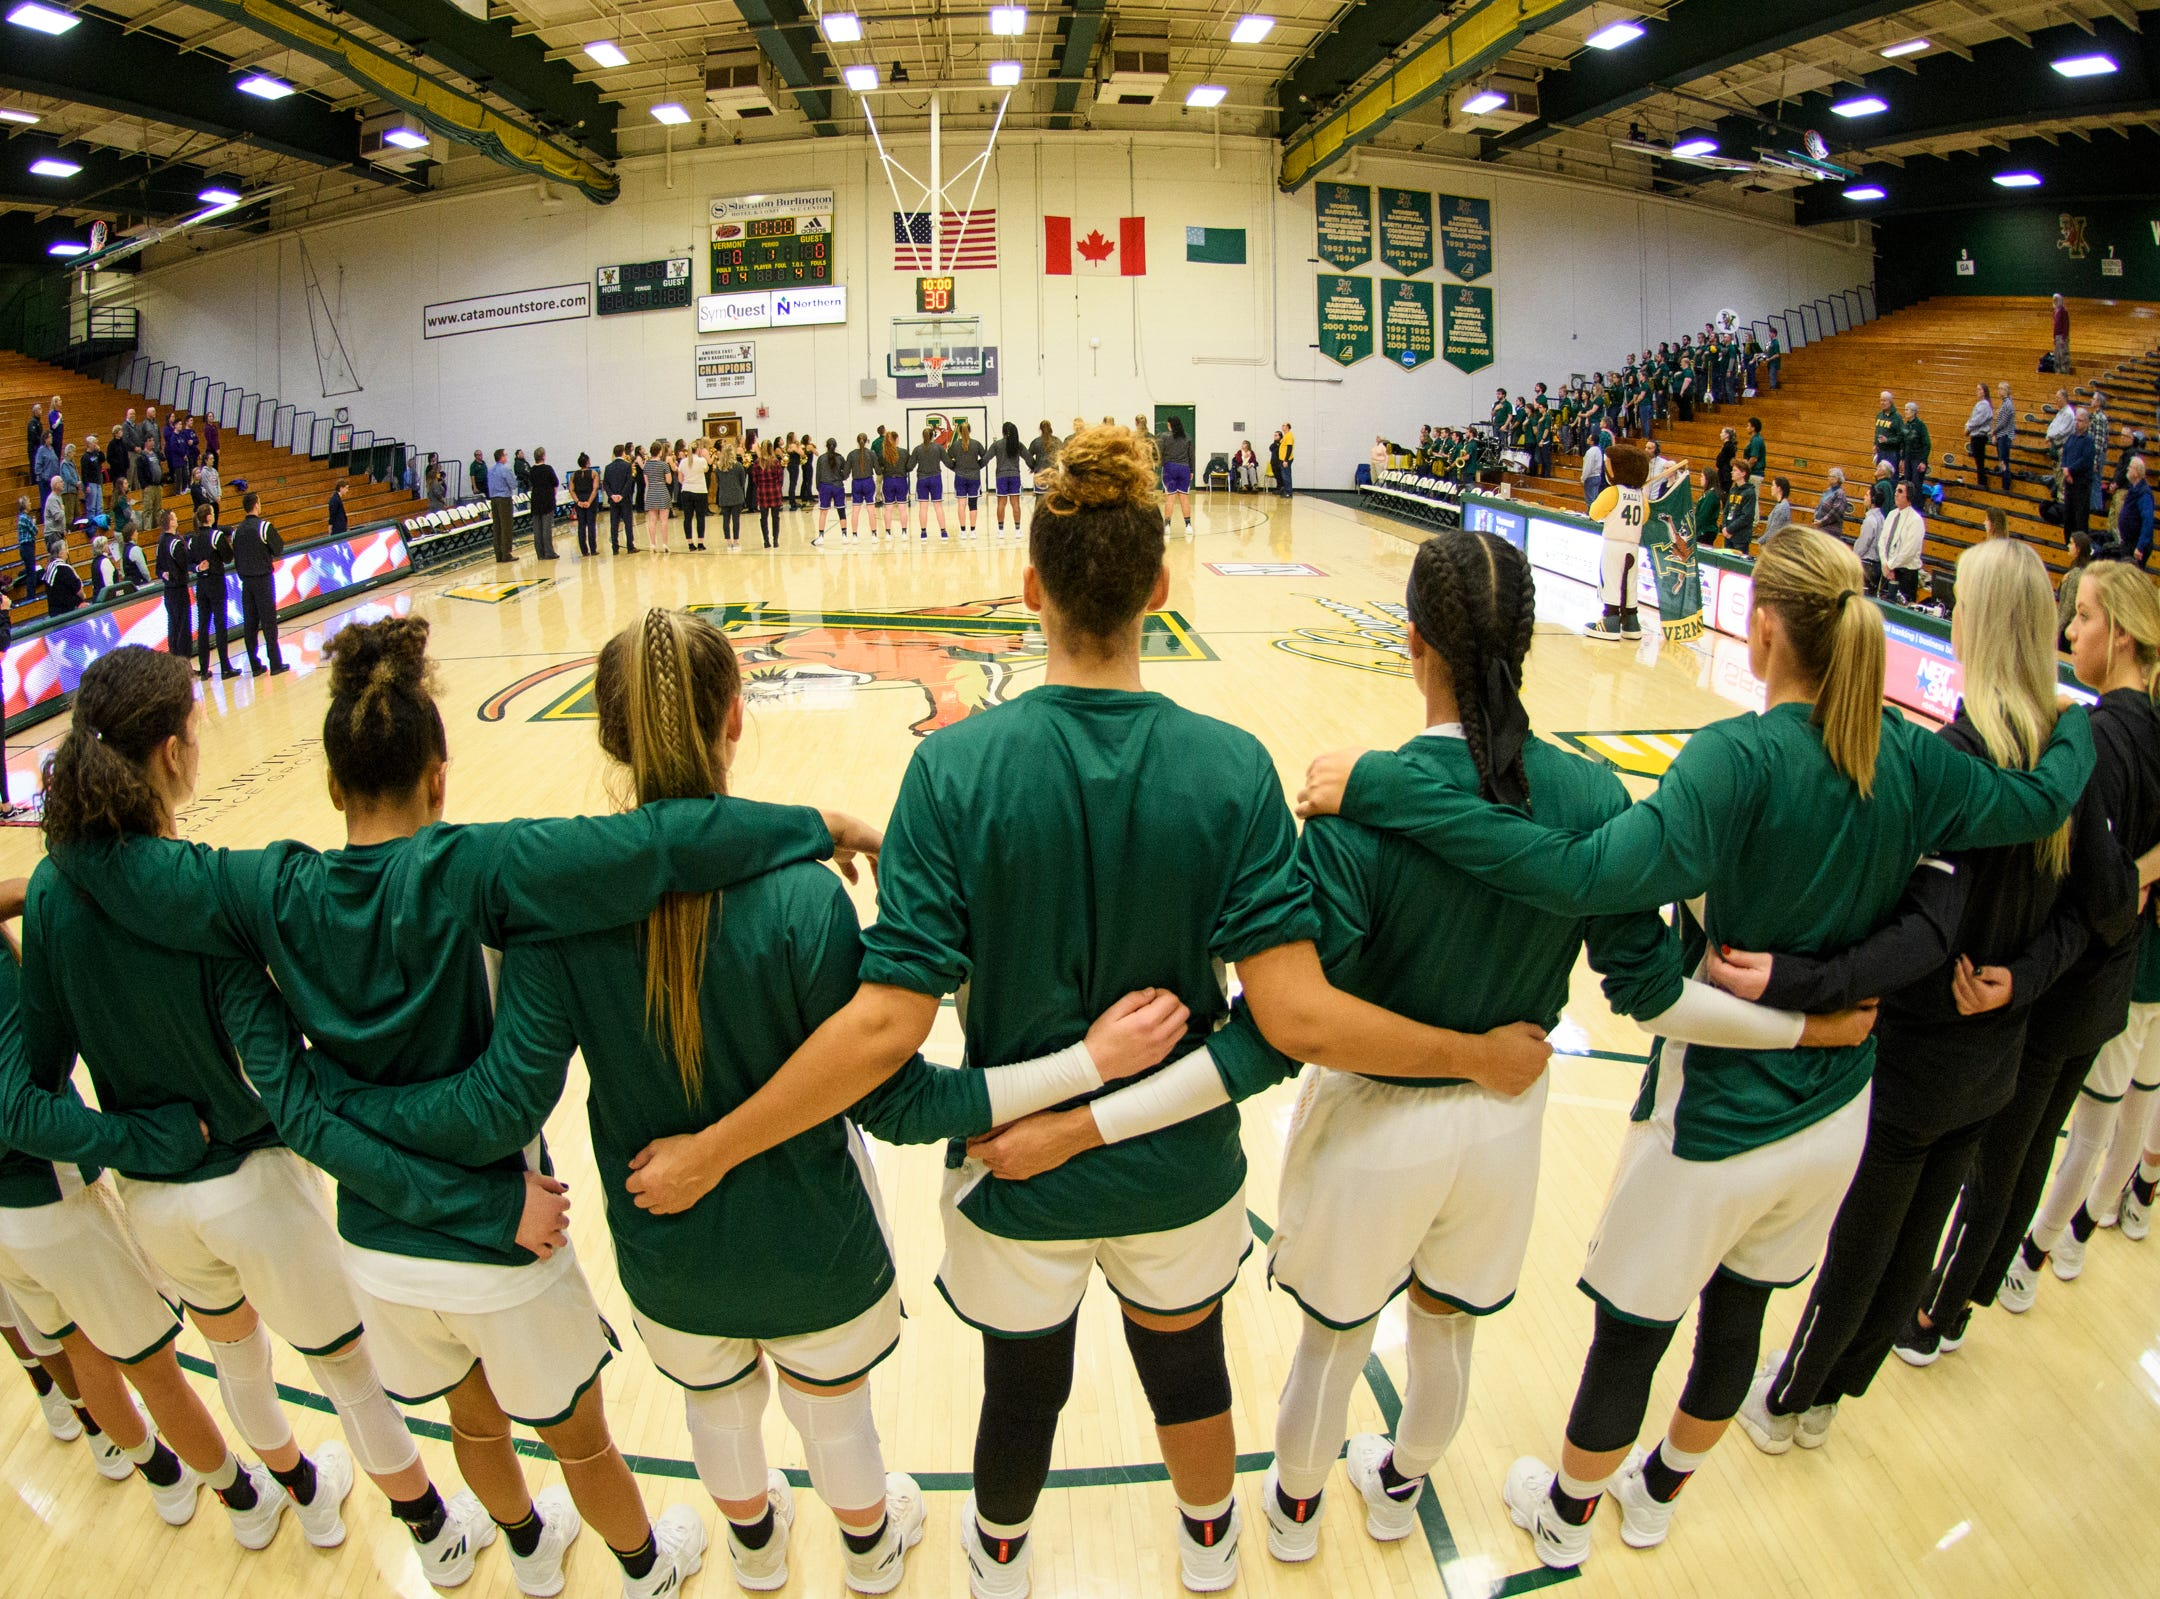 The teams listen to the National Anthem during the women's basketball game between the Holy Cross Crusaders and the Vermont Catamounts at Patrick Gym on Wednesday night November 28, 2018 in Burlington.